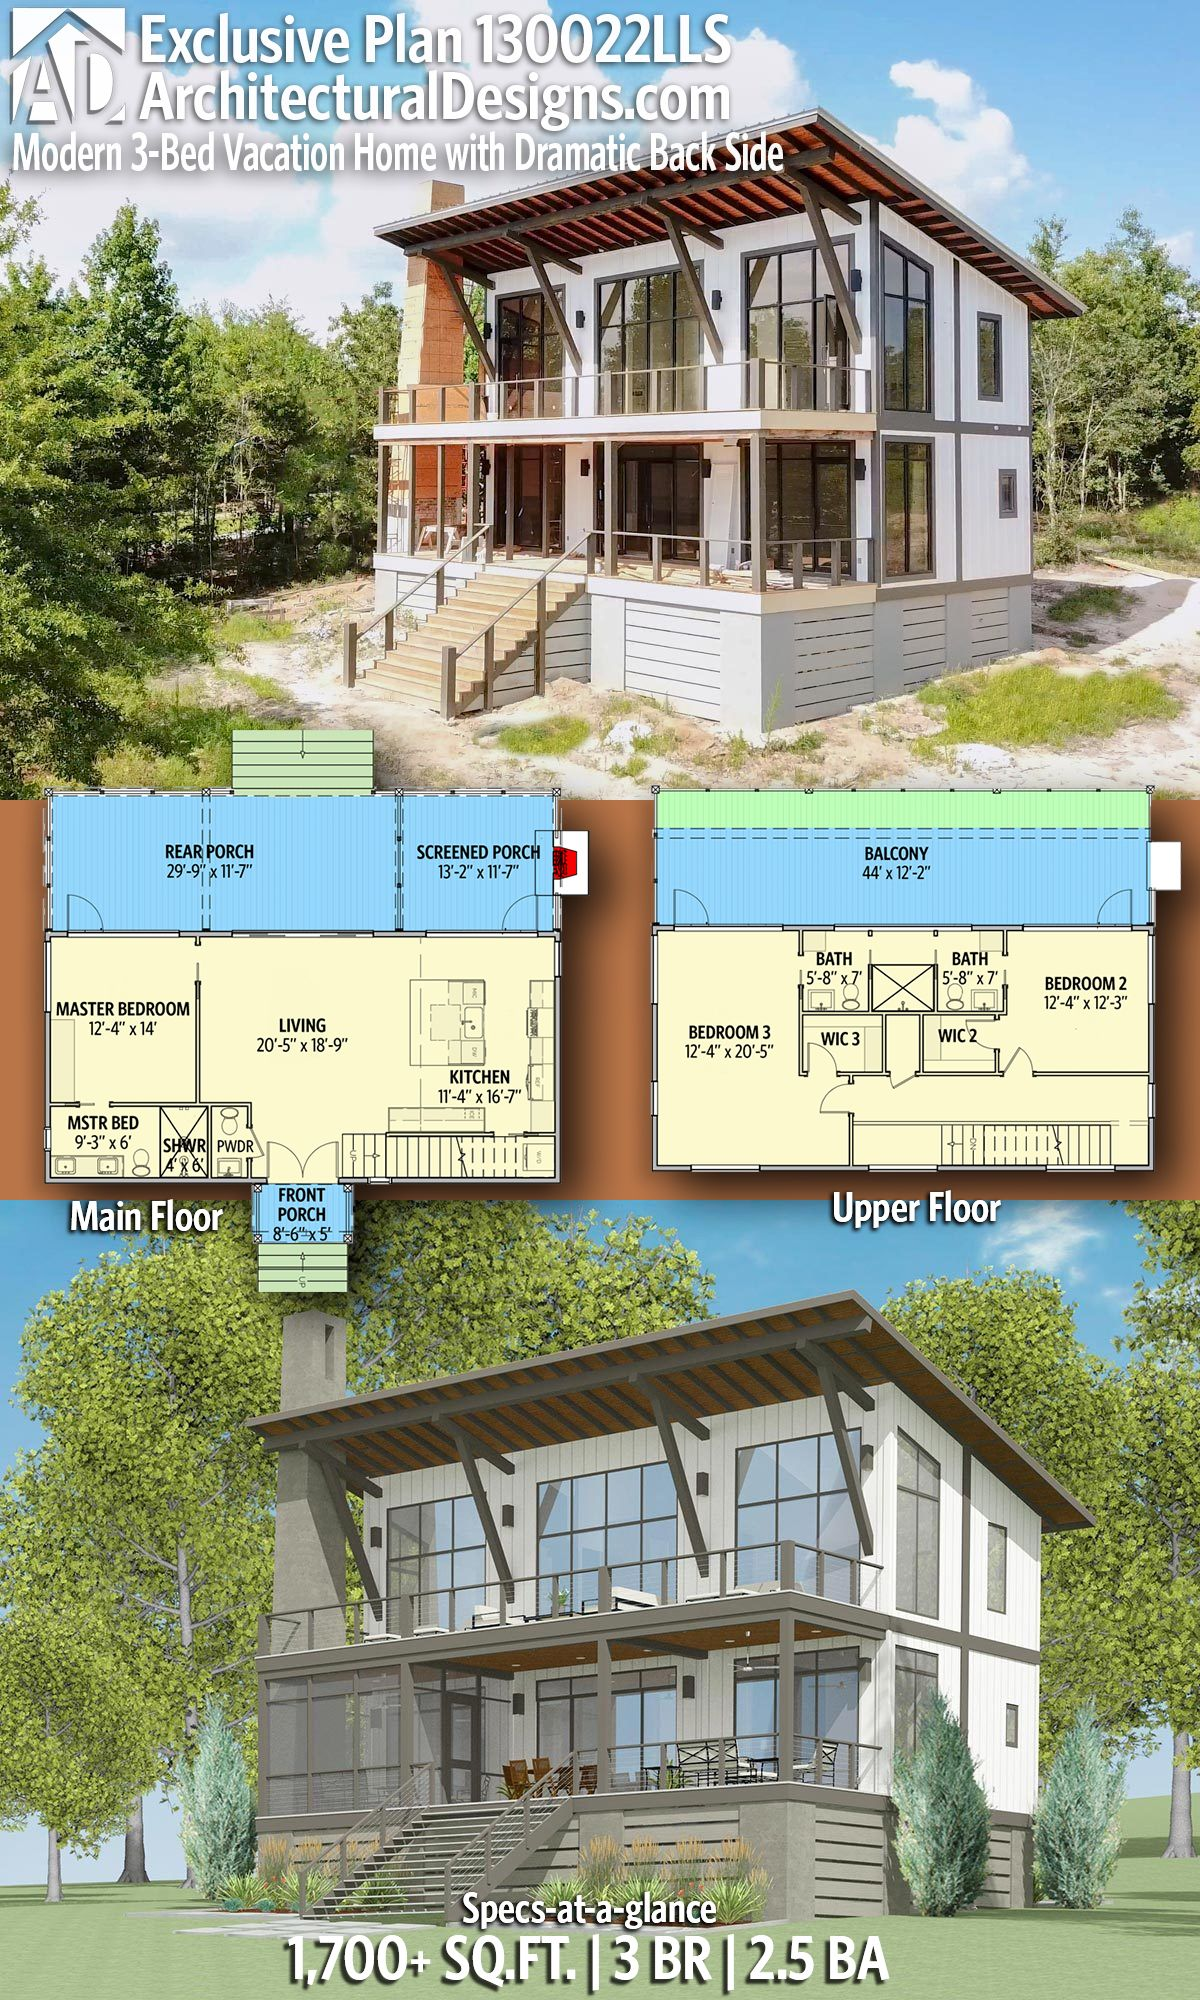 Plan 130022lls Modern 3 Bed Vacation Home With Dramatic Back Side Lake House Plans Modern House Plans House Plans